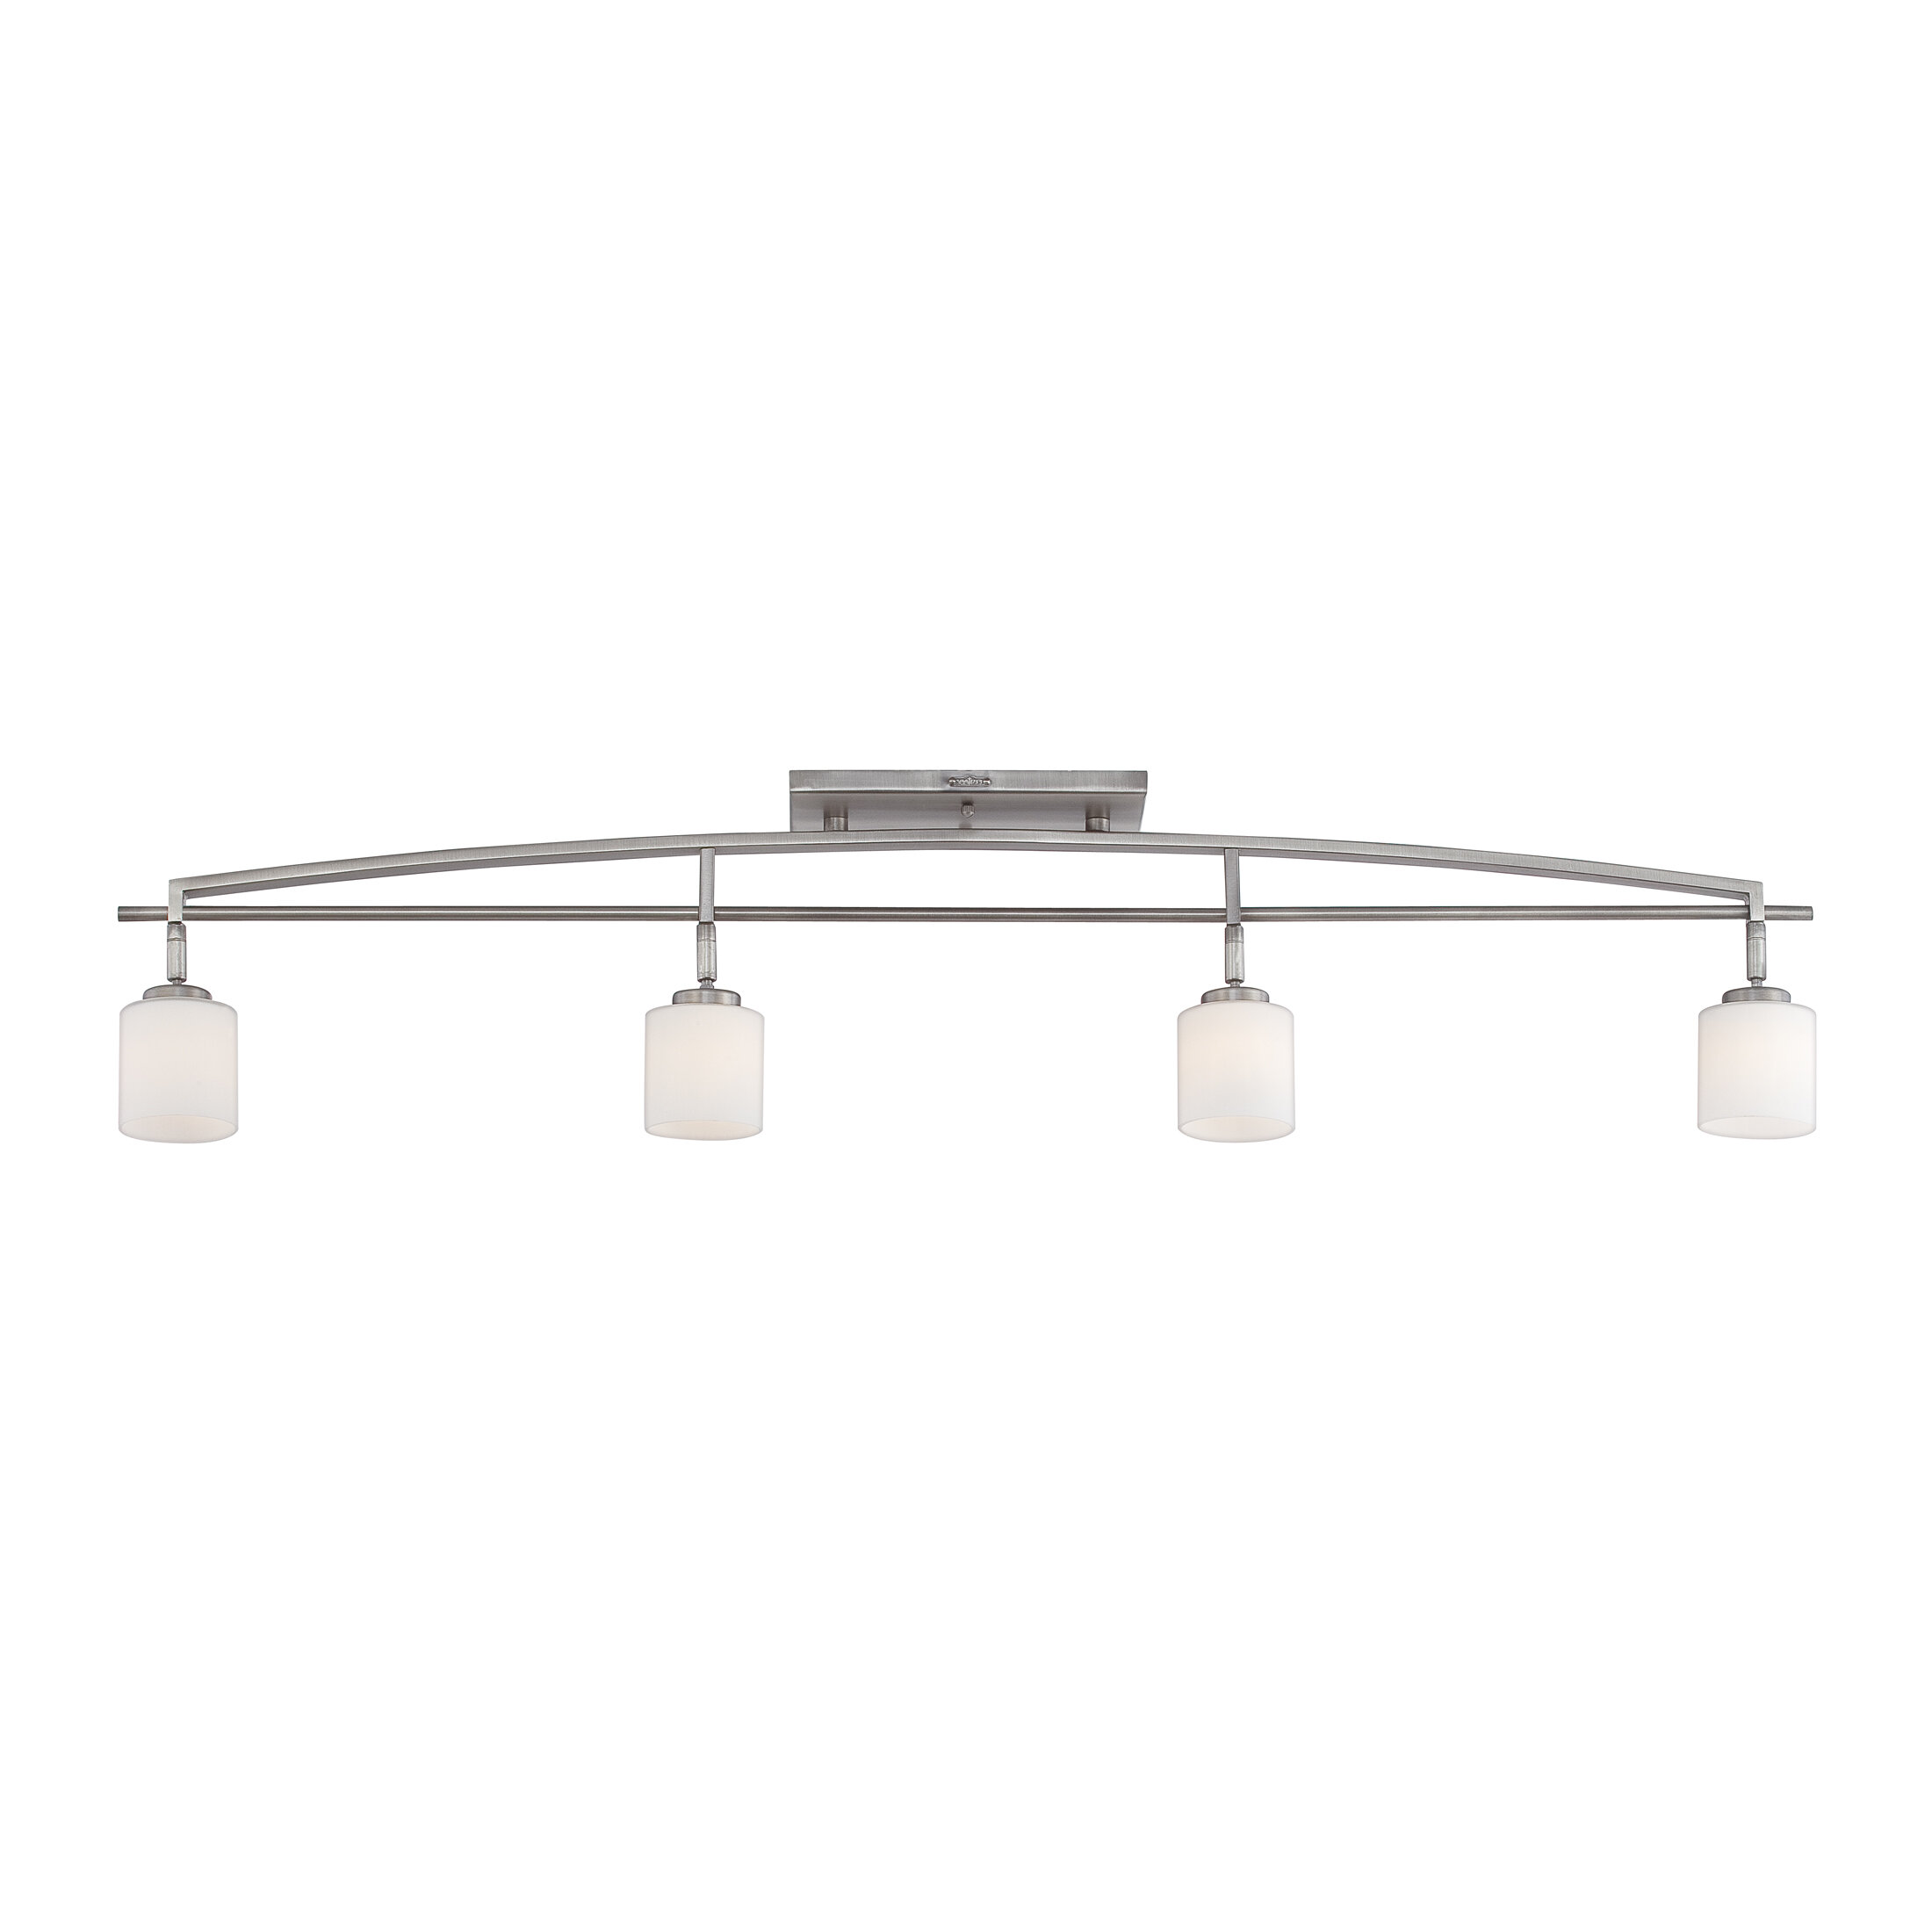 sc 1 st  Wayfair & Latitude Run Burchell 4-Light Track Kit u0026 Reviews | Wayfair